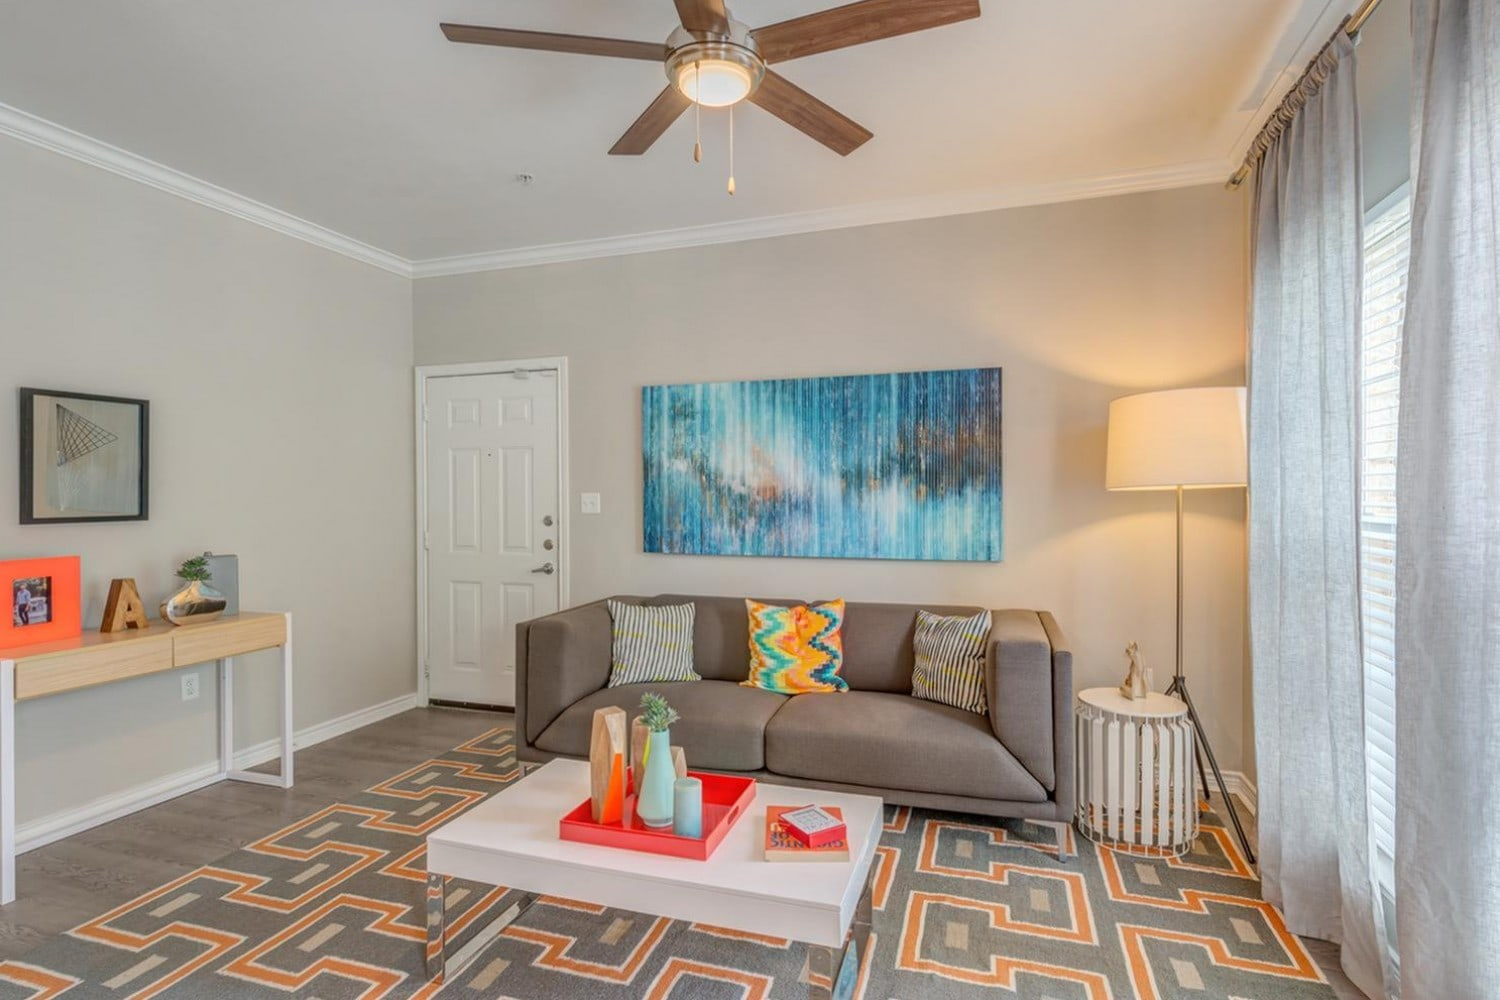 100 best apartments in san antonio tx with pictures rh apartmentlist com average electric bill for 2 bedroom apartment in florida average electric bill for 2 bedroom apartment in florida